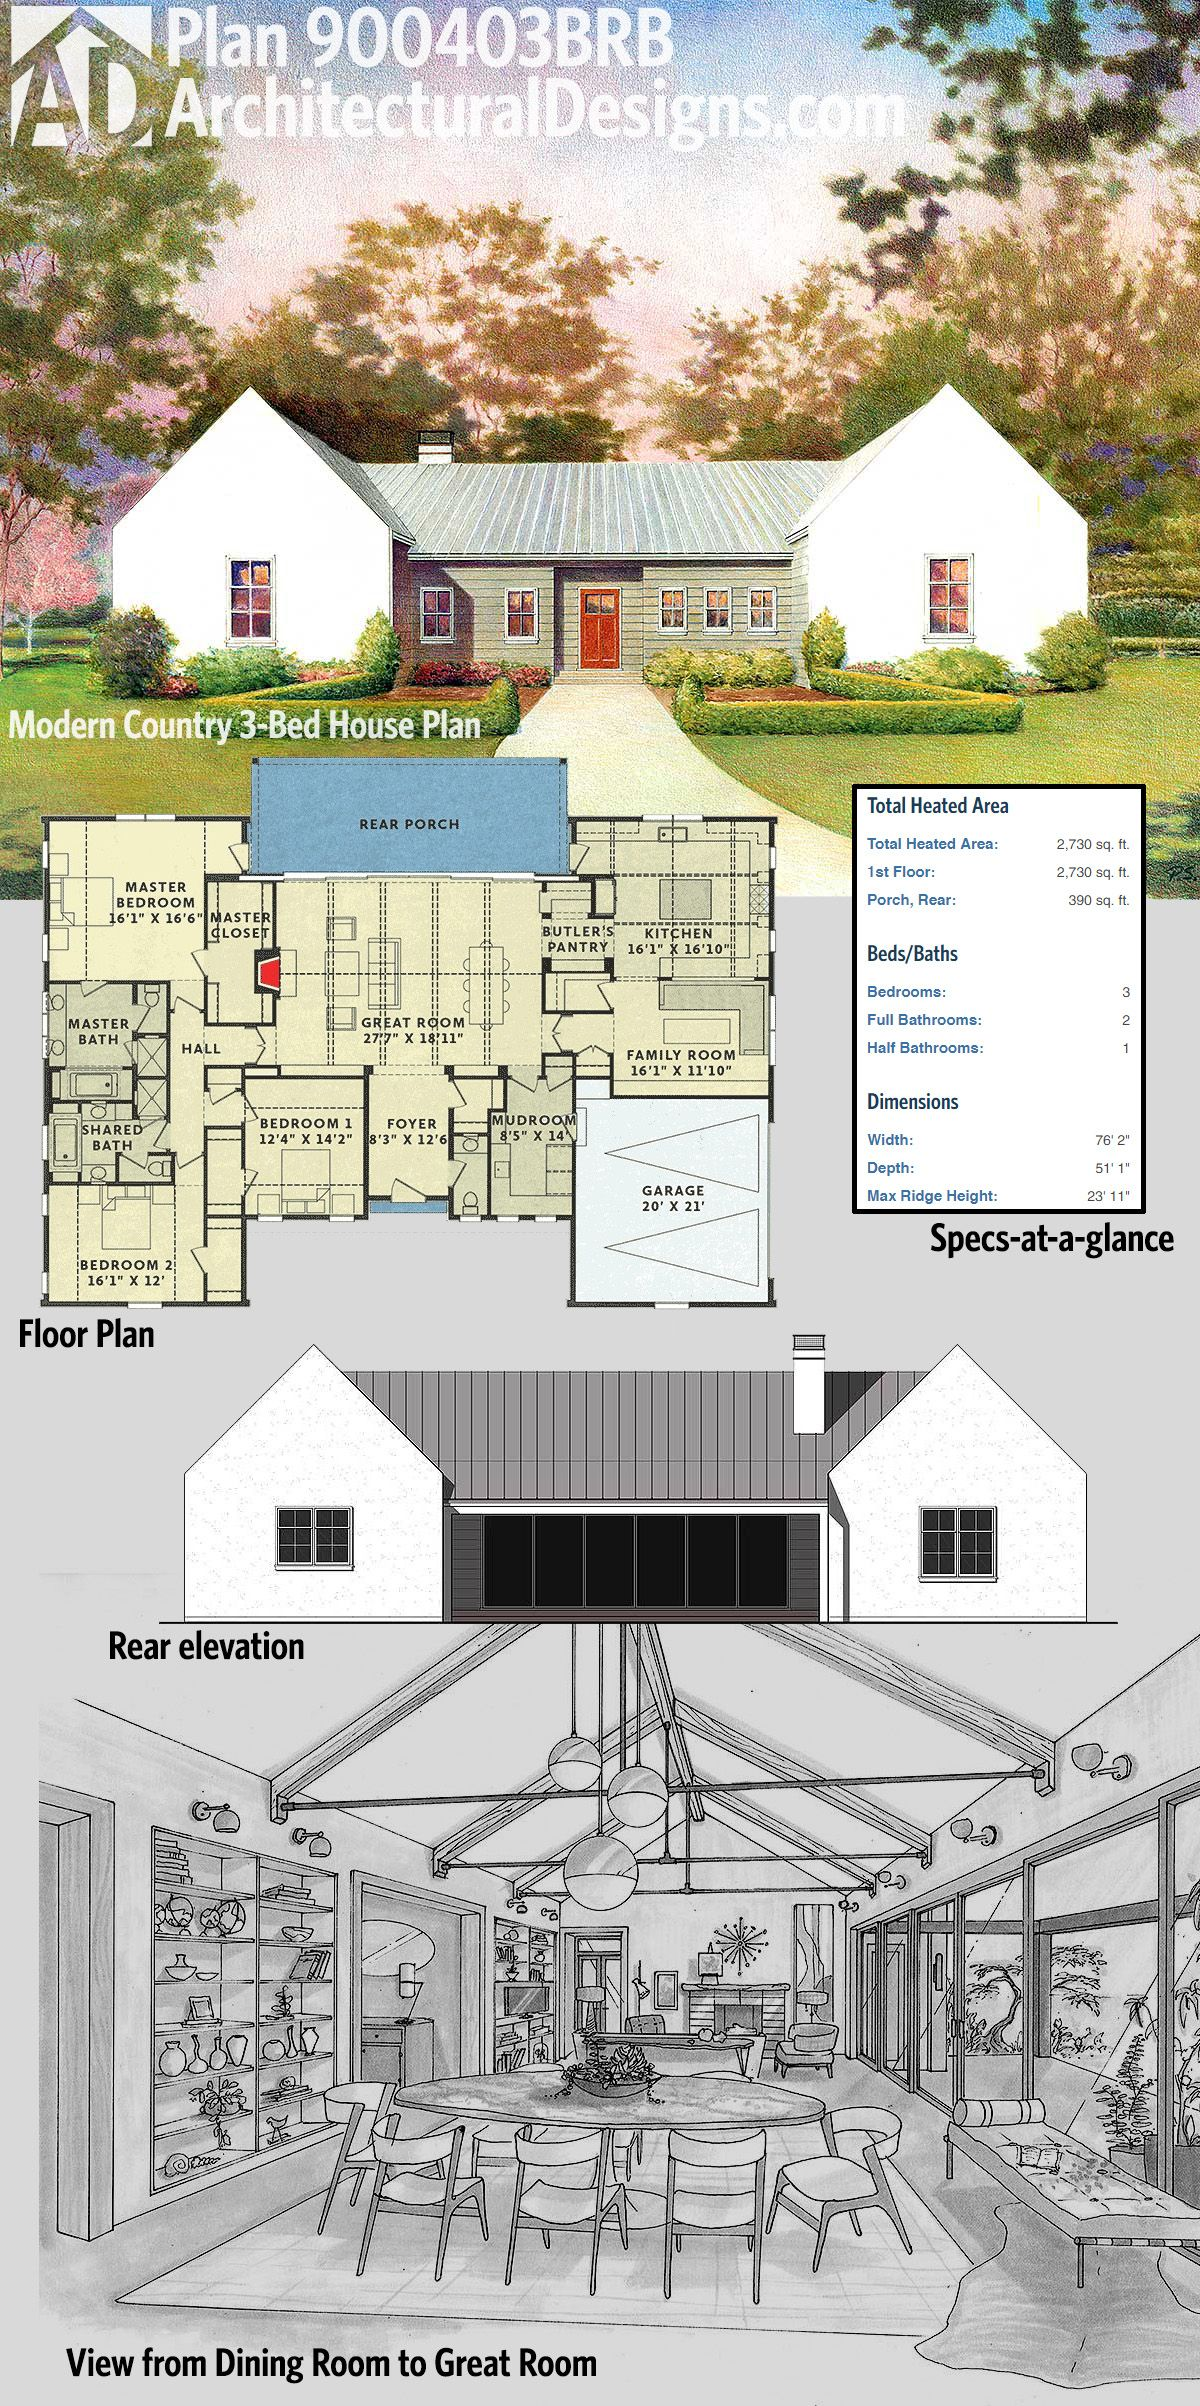 Architectural Designs Modern Country House Plan 900403BRB ...